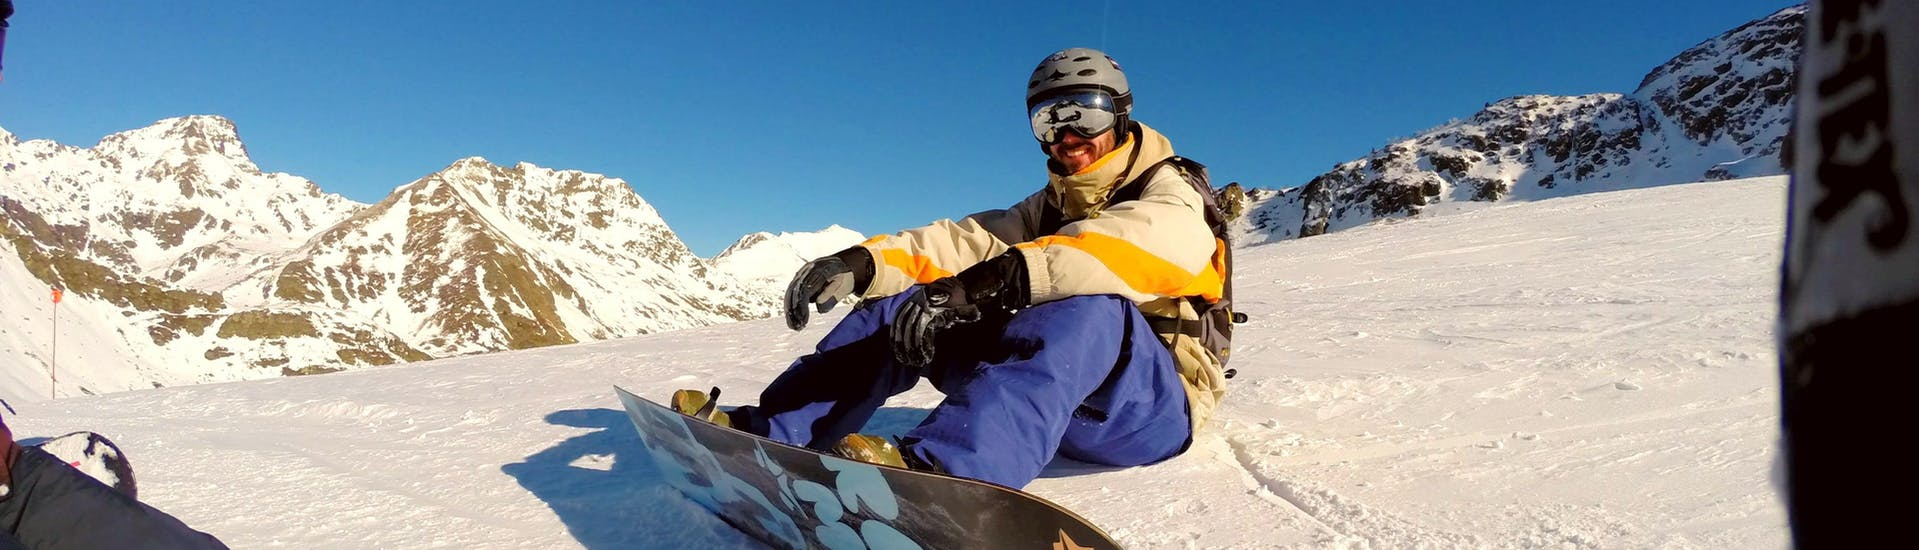 A snowboarder sits relaxed in the snow and enjoys the beautiful view during thePrivate Snowboarding Lessons for Kids & Adults of all Levels of Life Ski Escuela de Esquí Baqueira.